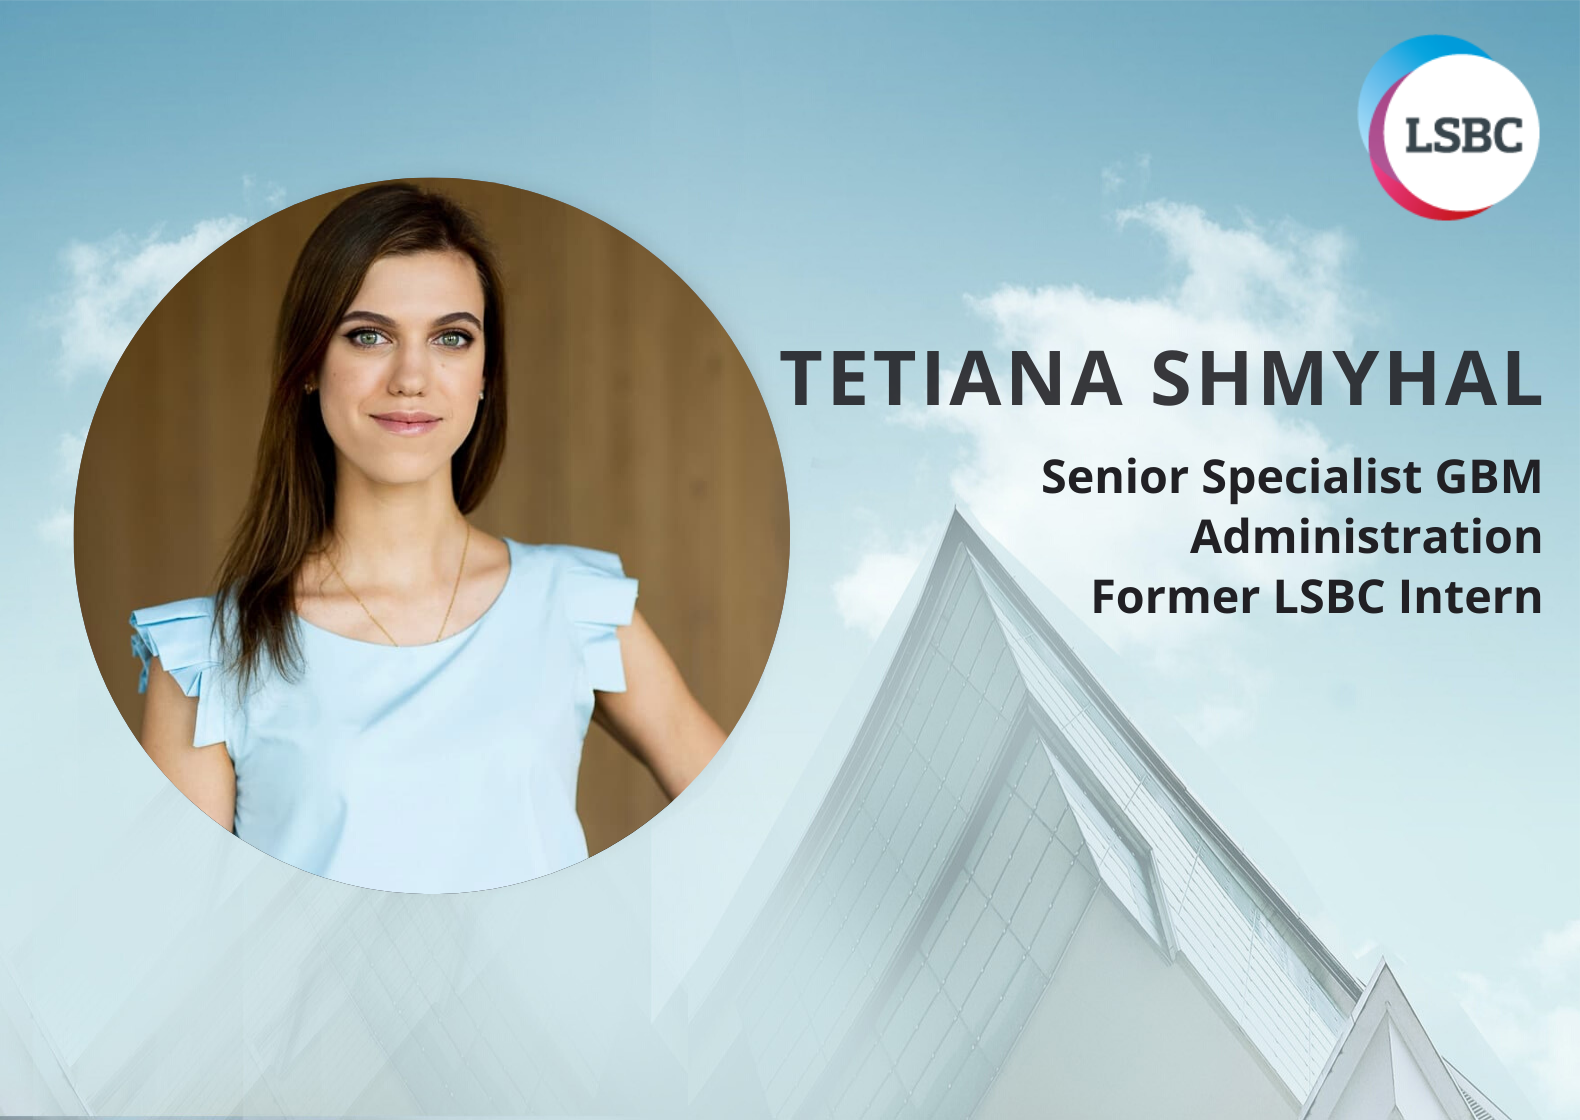 Tetiana Shmyhal. She worked with us as PR Intern and now, just after one year in Mercer, she is a Senior Specialist GBM Administration.